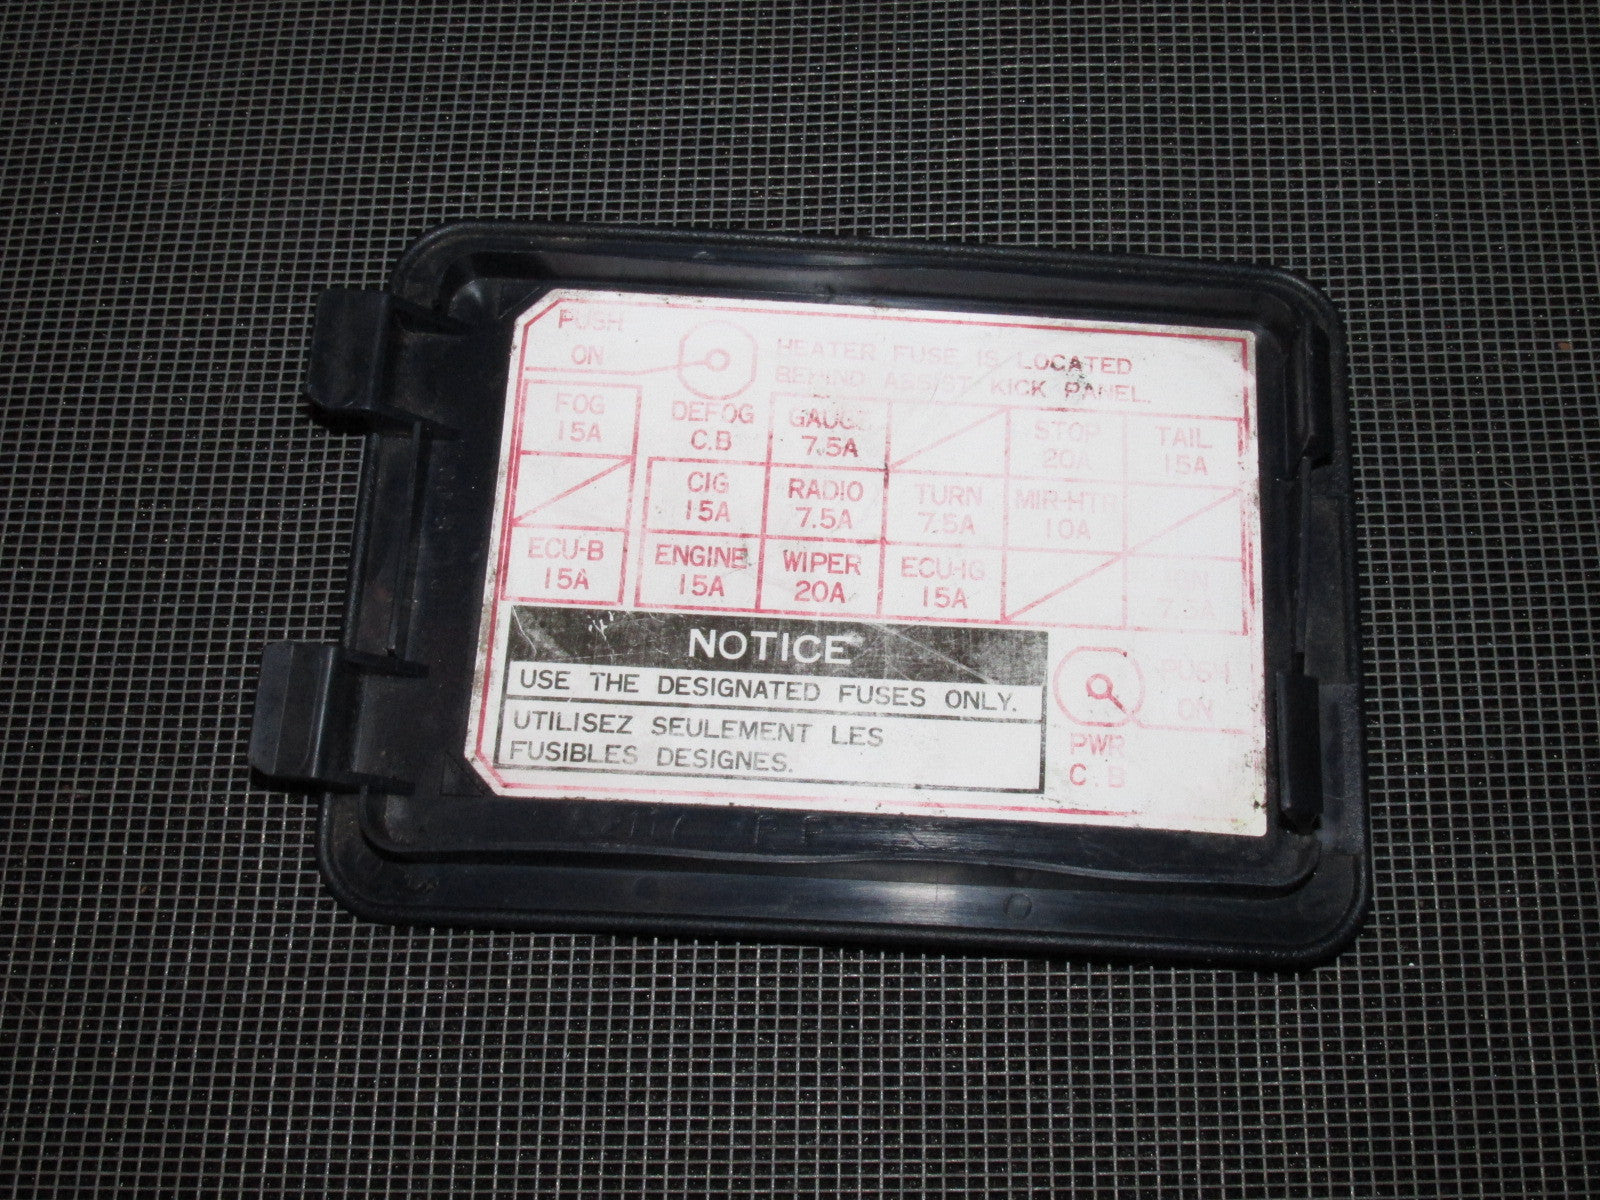 2008 Toyota Sienna Fuse Box Diagram Schematic Diagrams Ford Taurus X 1989 Trusted Wiring